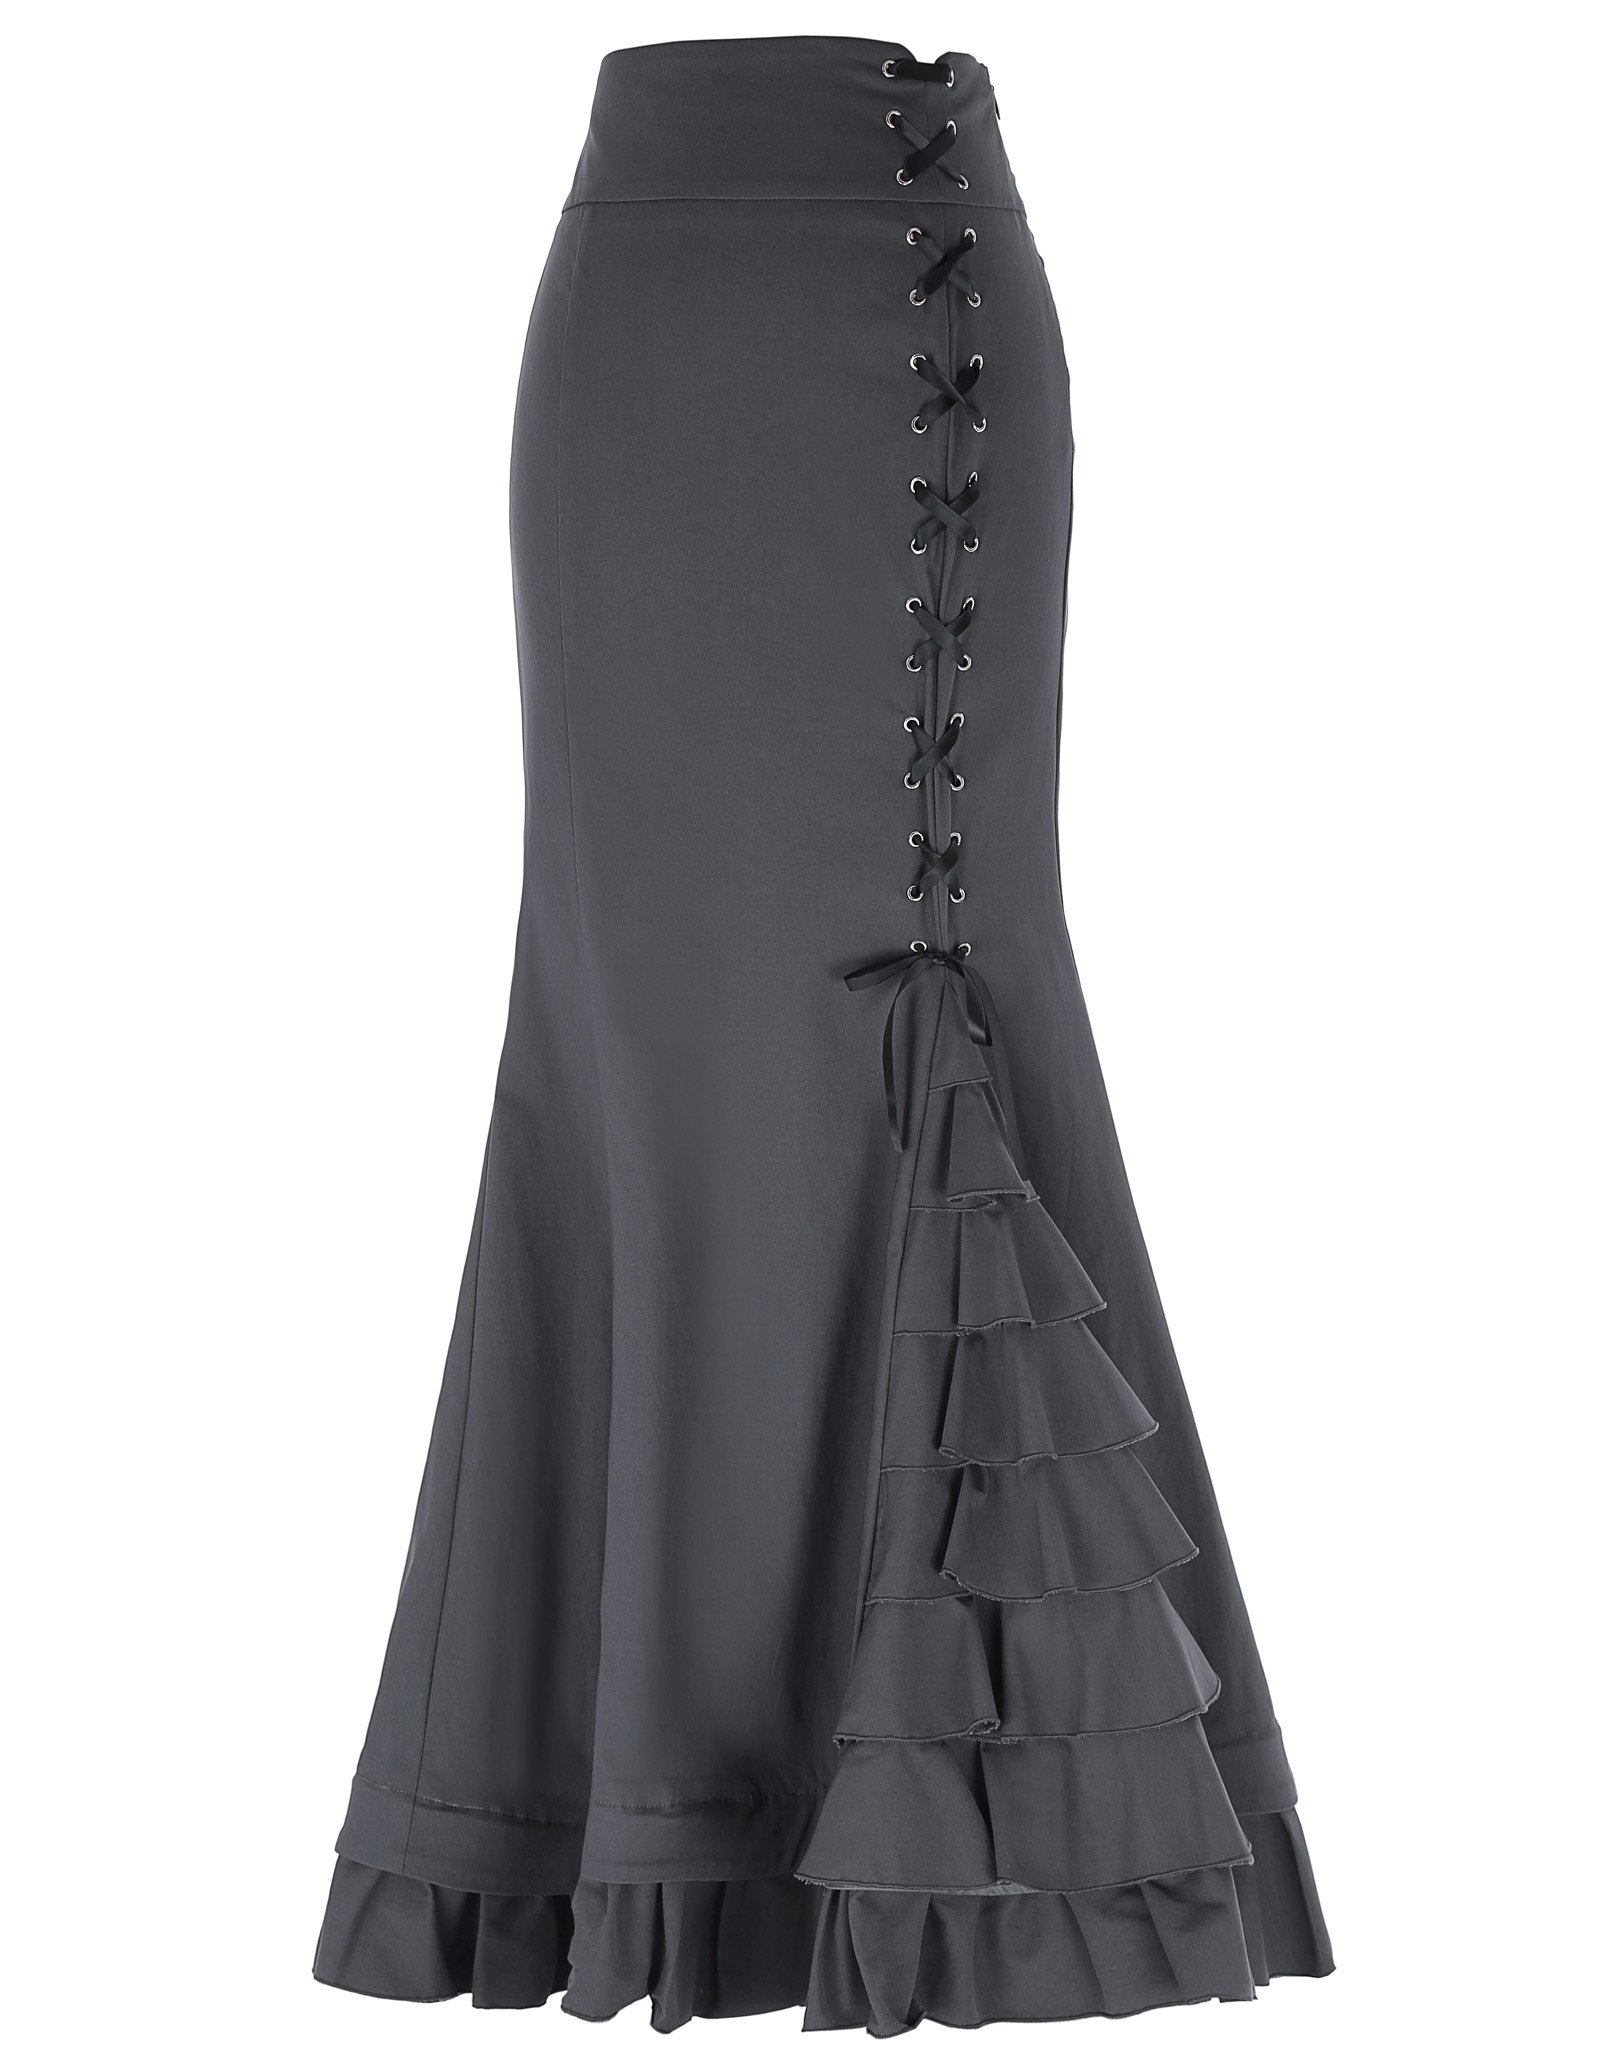 4212b1f469 Get Quotations · Belle Poque Women's Victorian Steampunk High Stretchy  Ruffled Fishtail Mermaid Skirt BP203